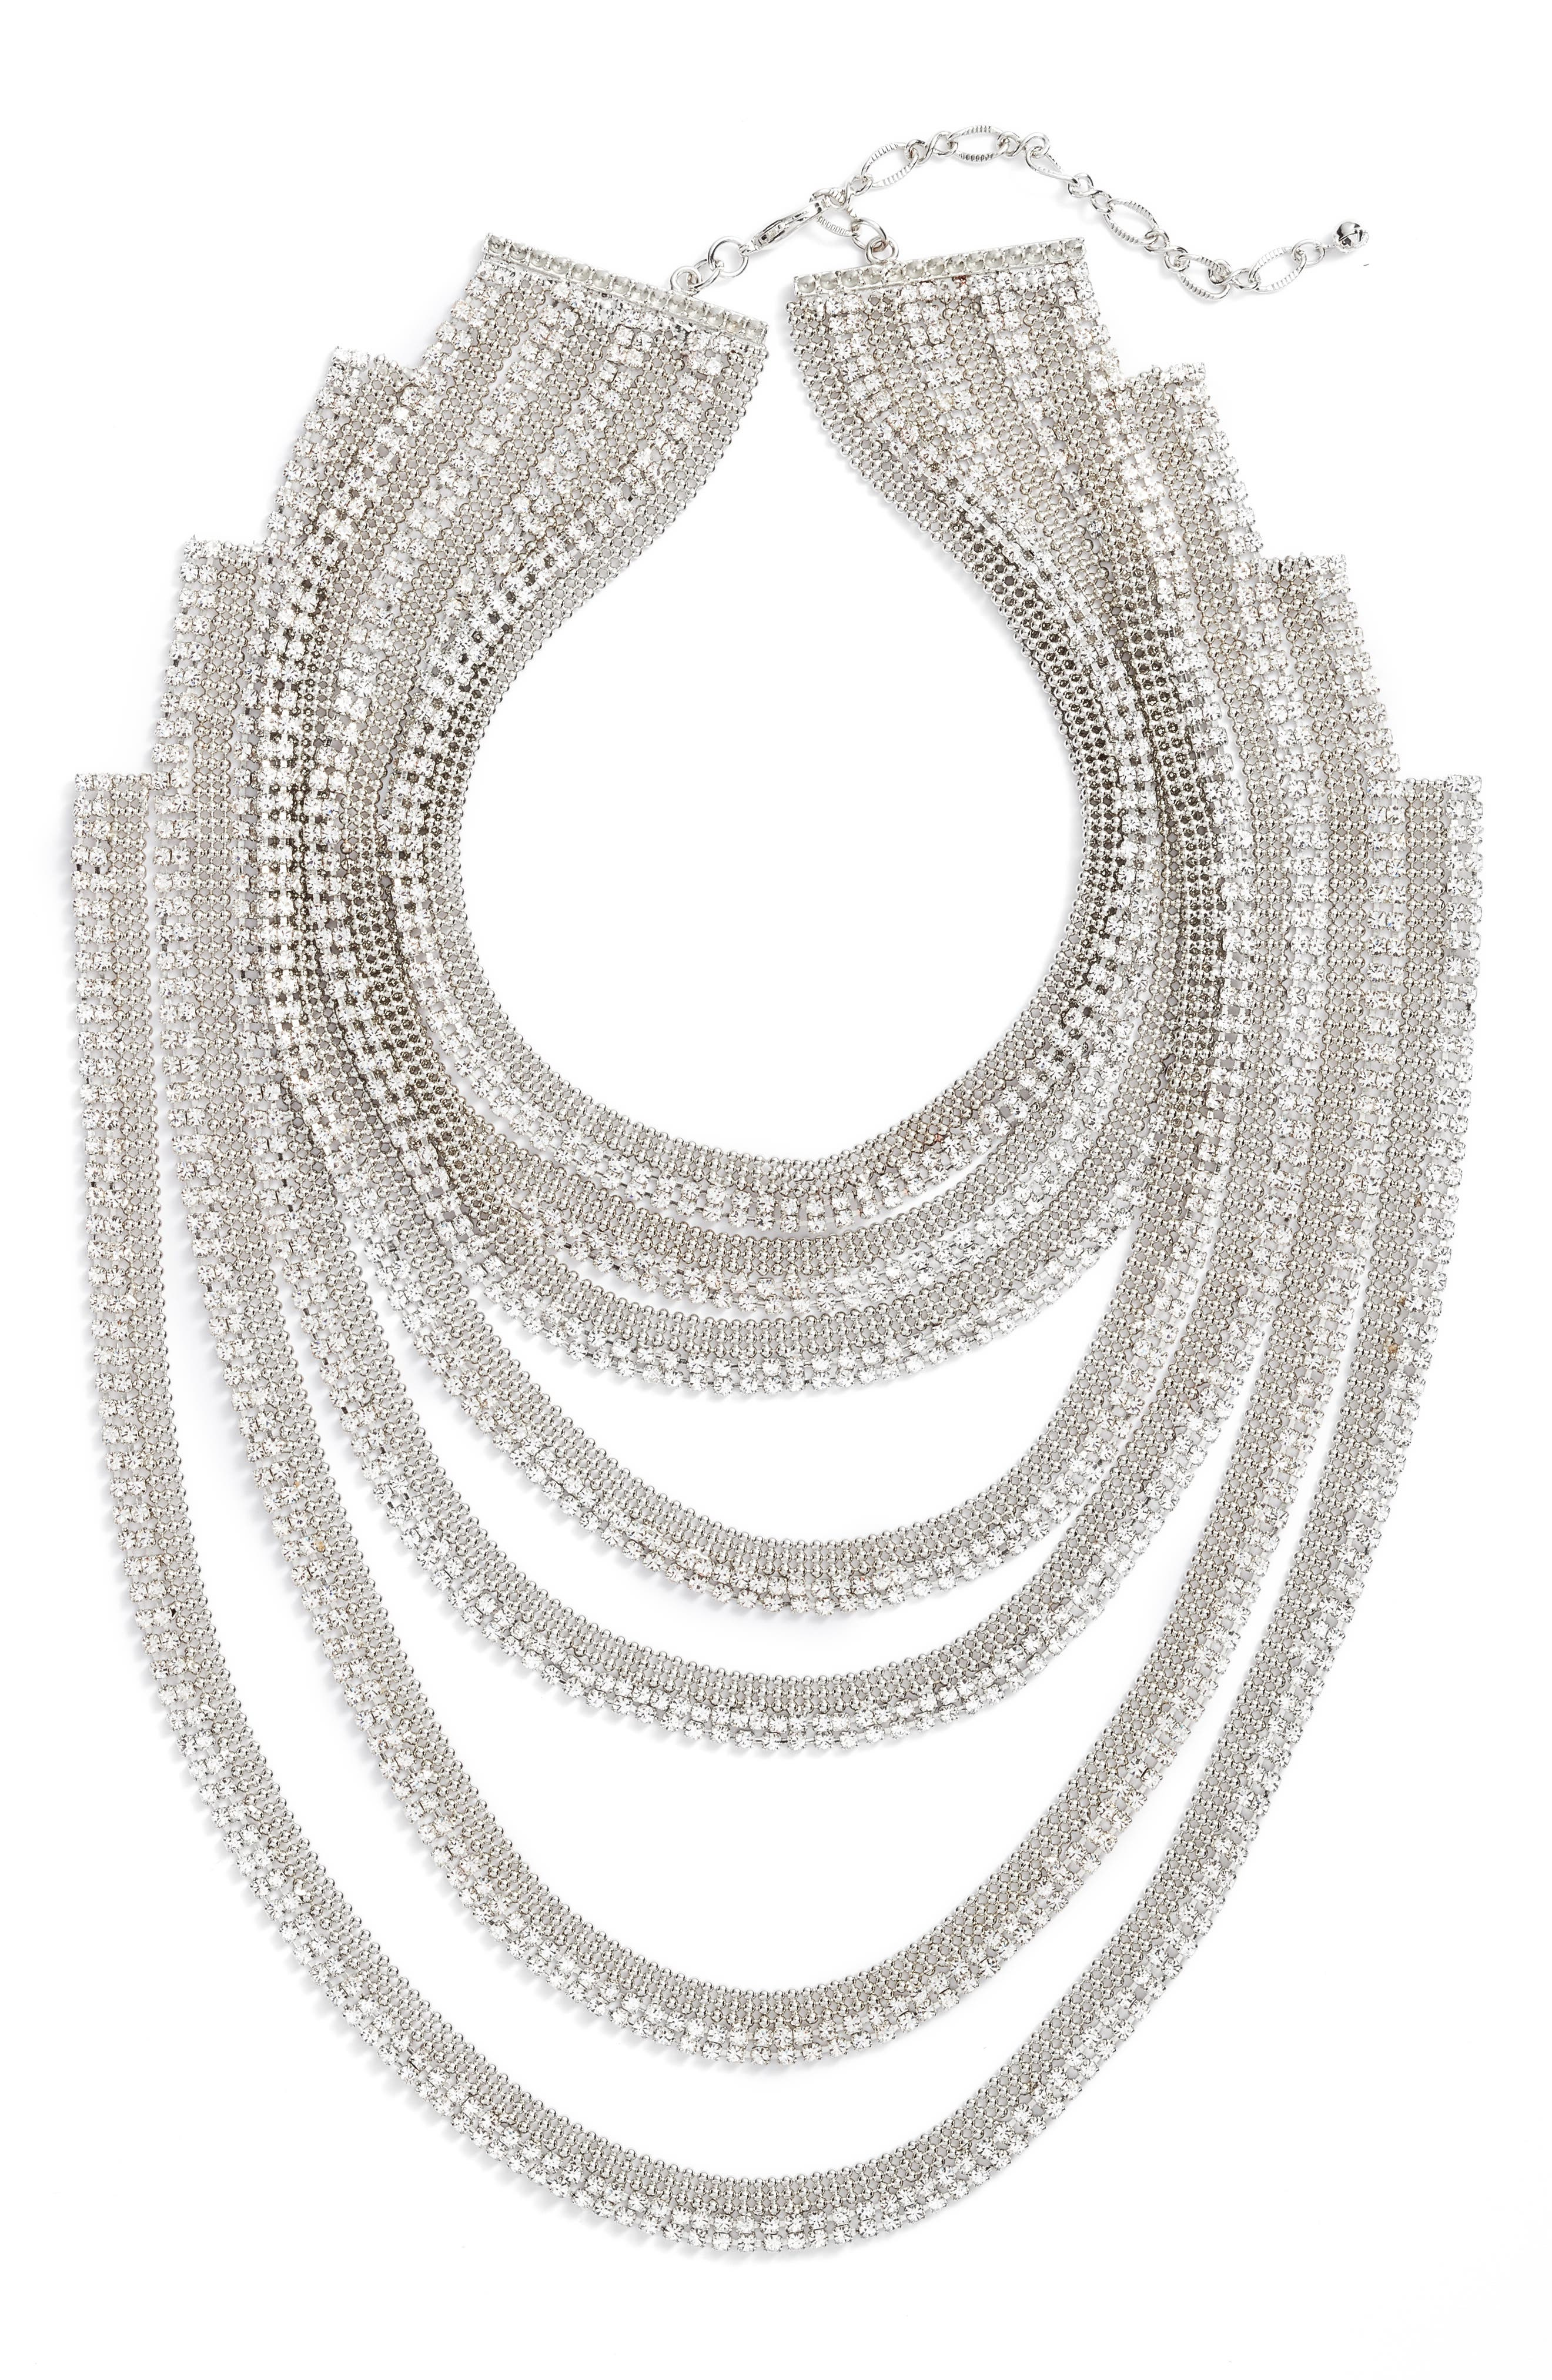 Multistrand Statement Necklace,                             Main thumbnail 1, color,